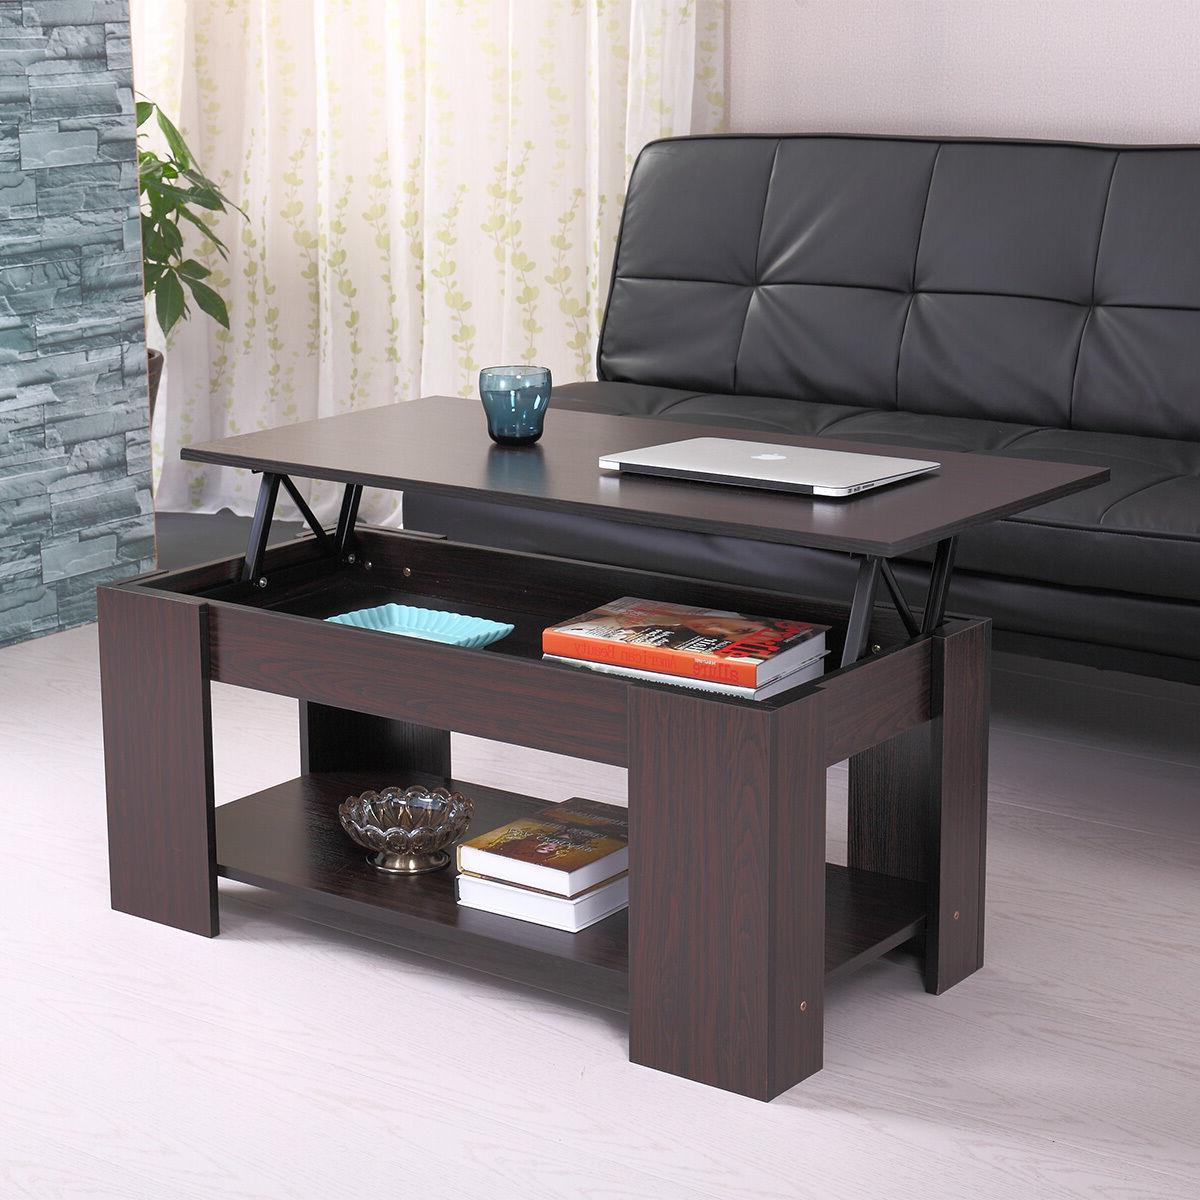 Modern Coffee W/ Space Room Furniture Walnut